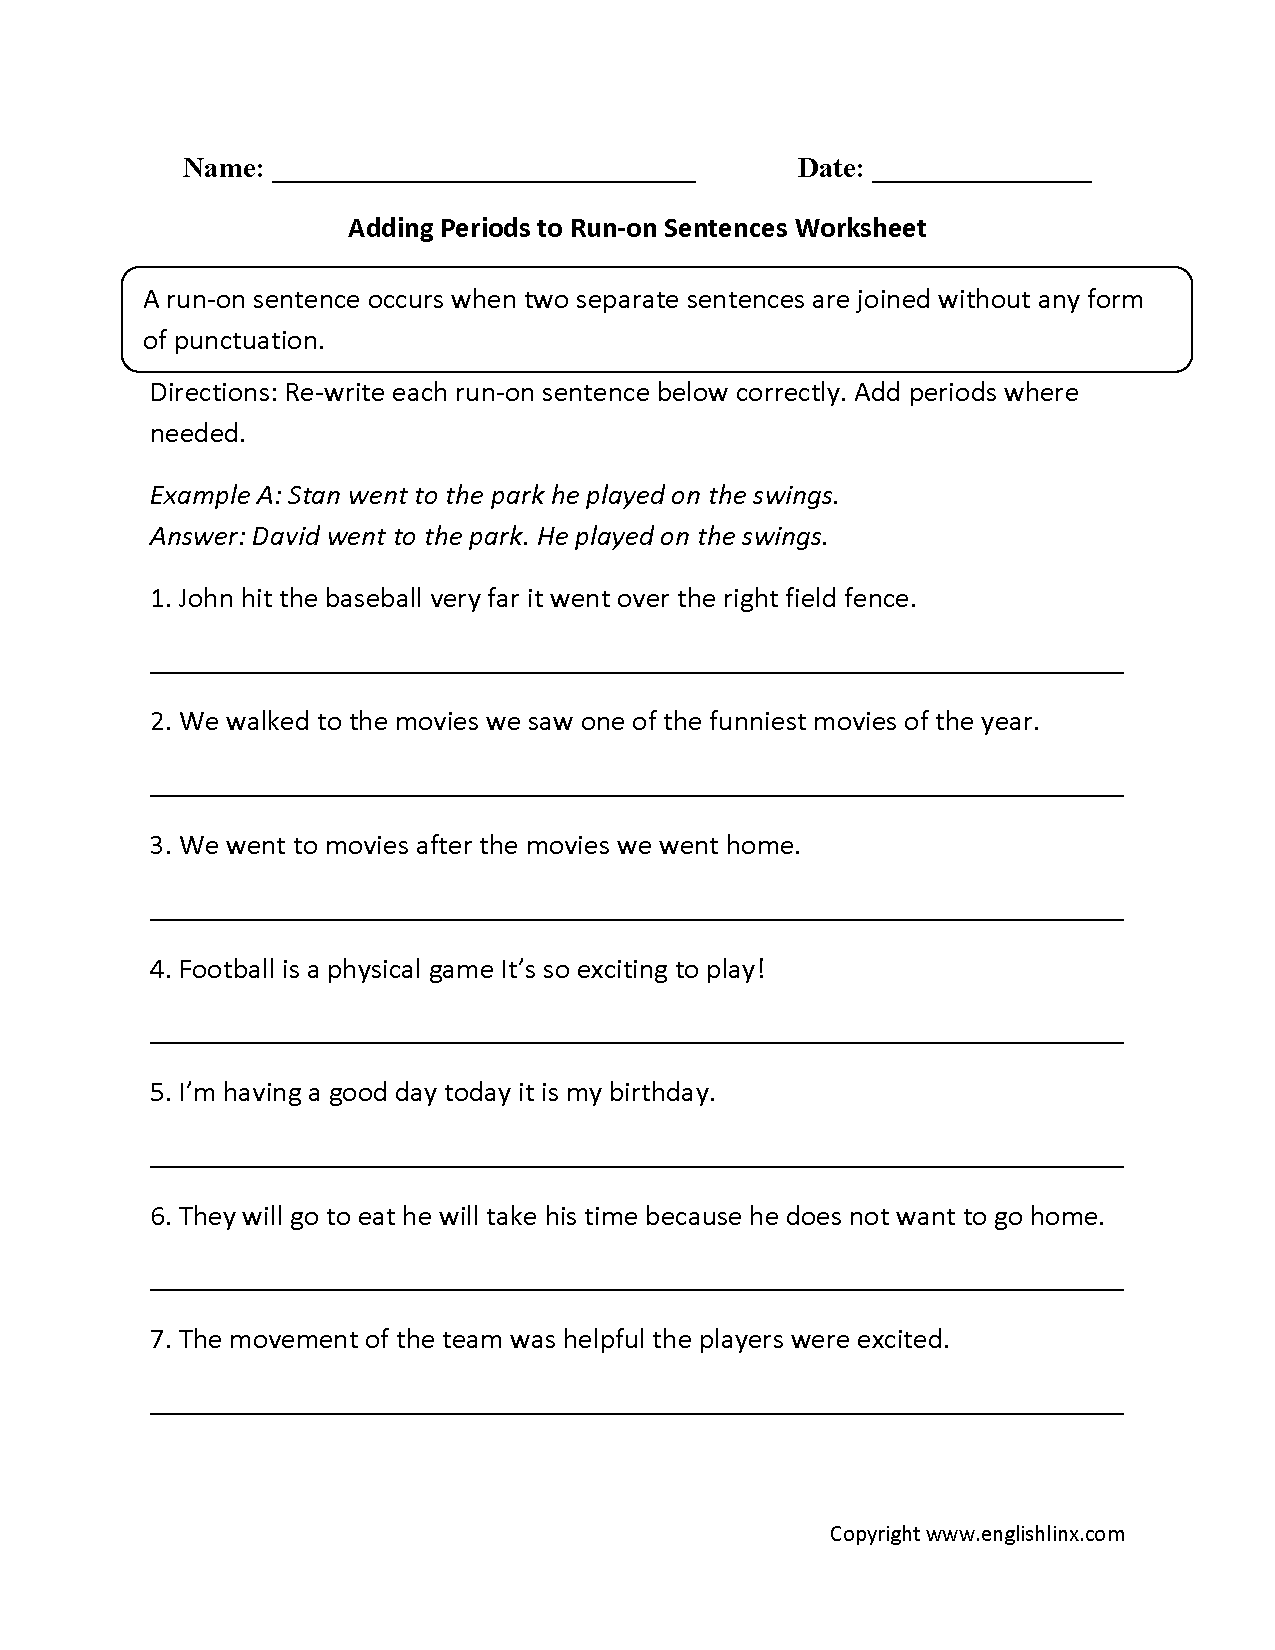 Uncategorized Sentence Editing Worksheets sentences worksheets run on worksheets